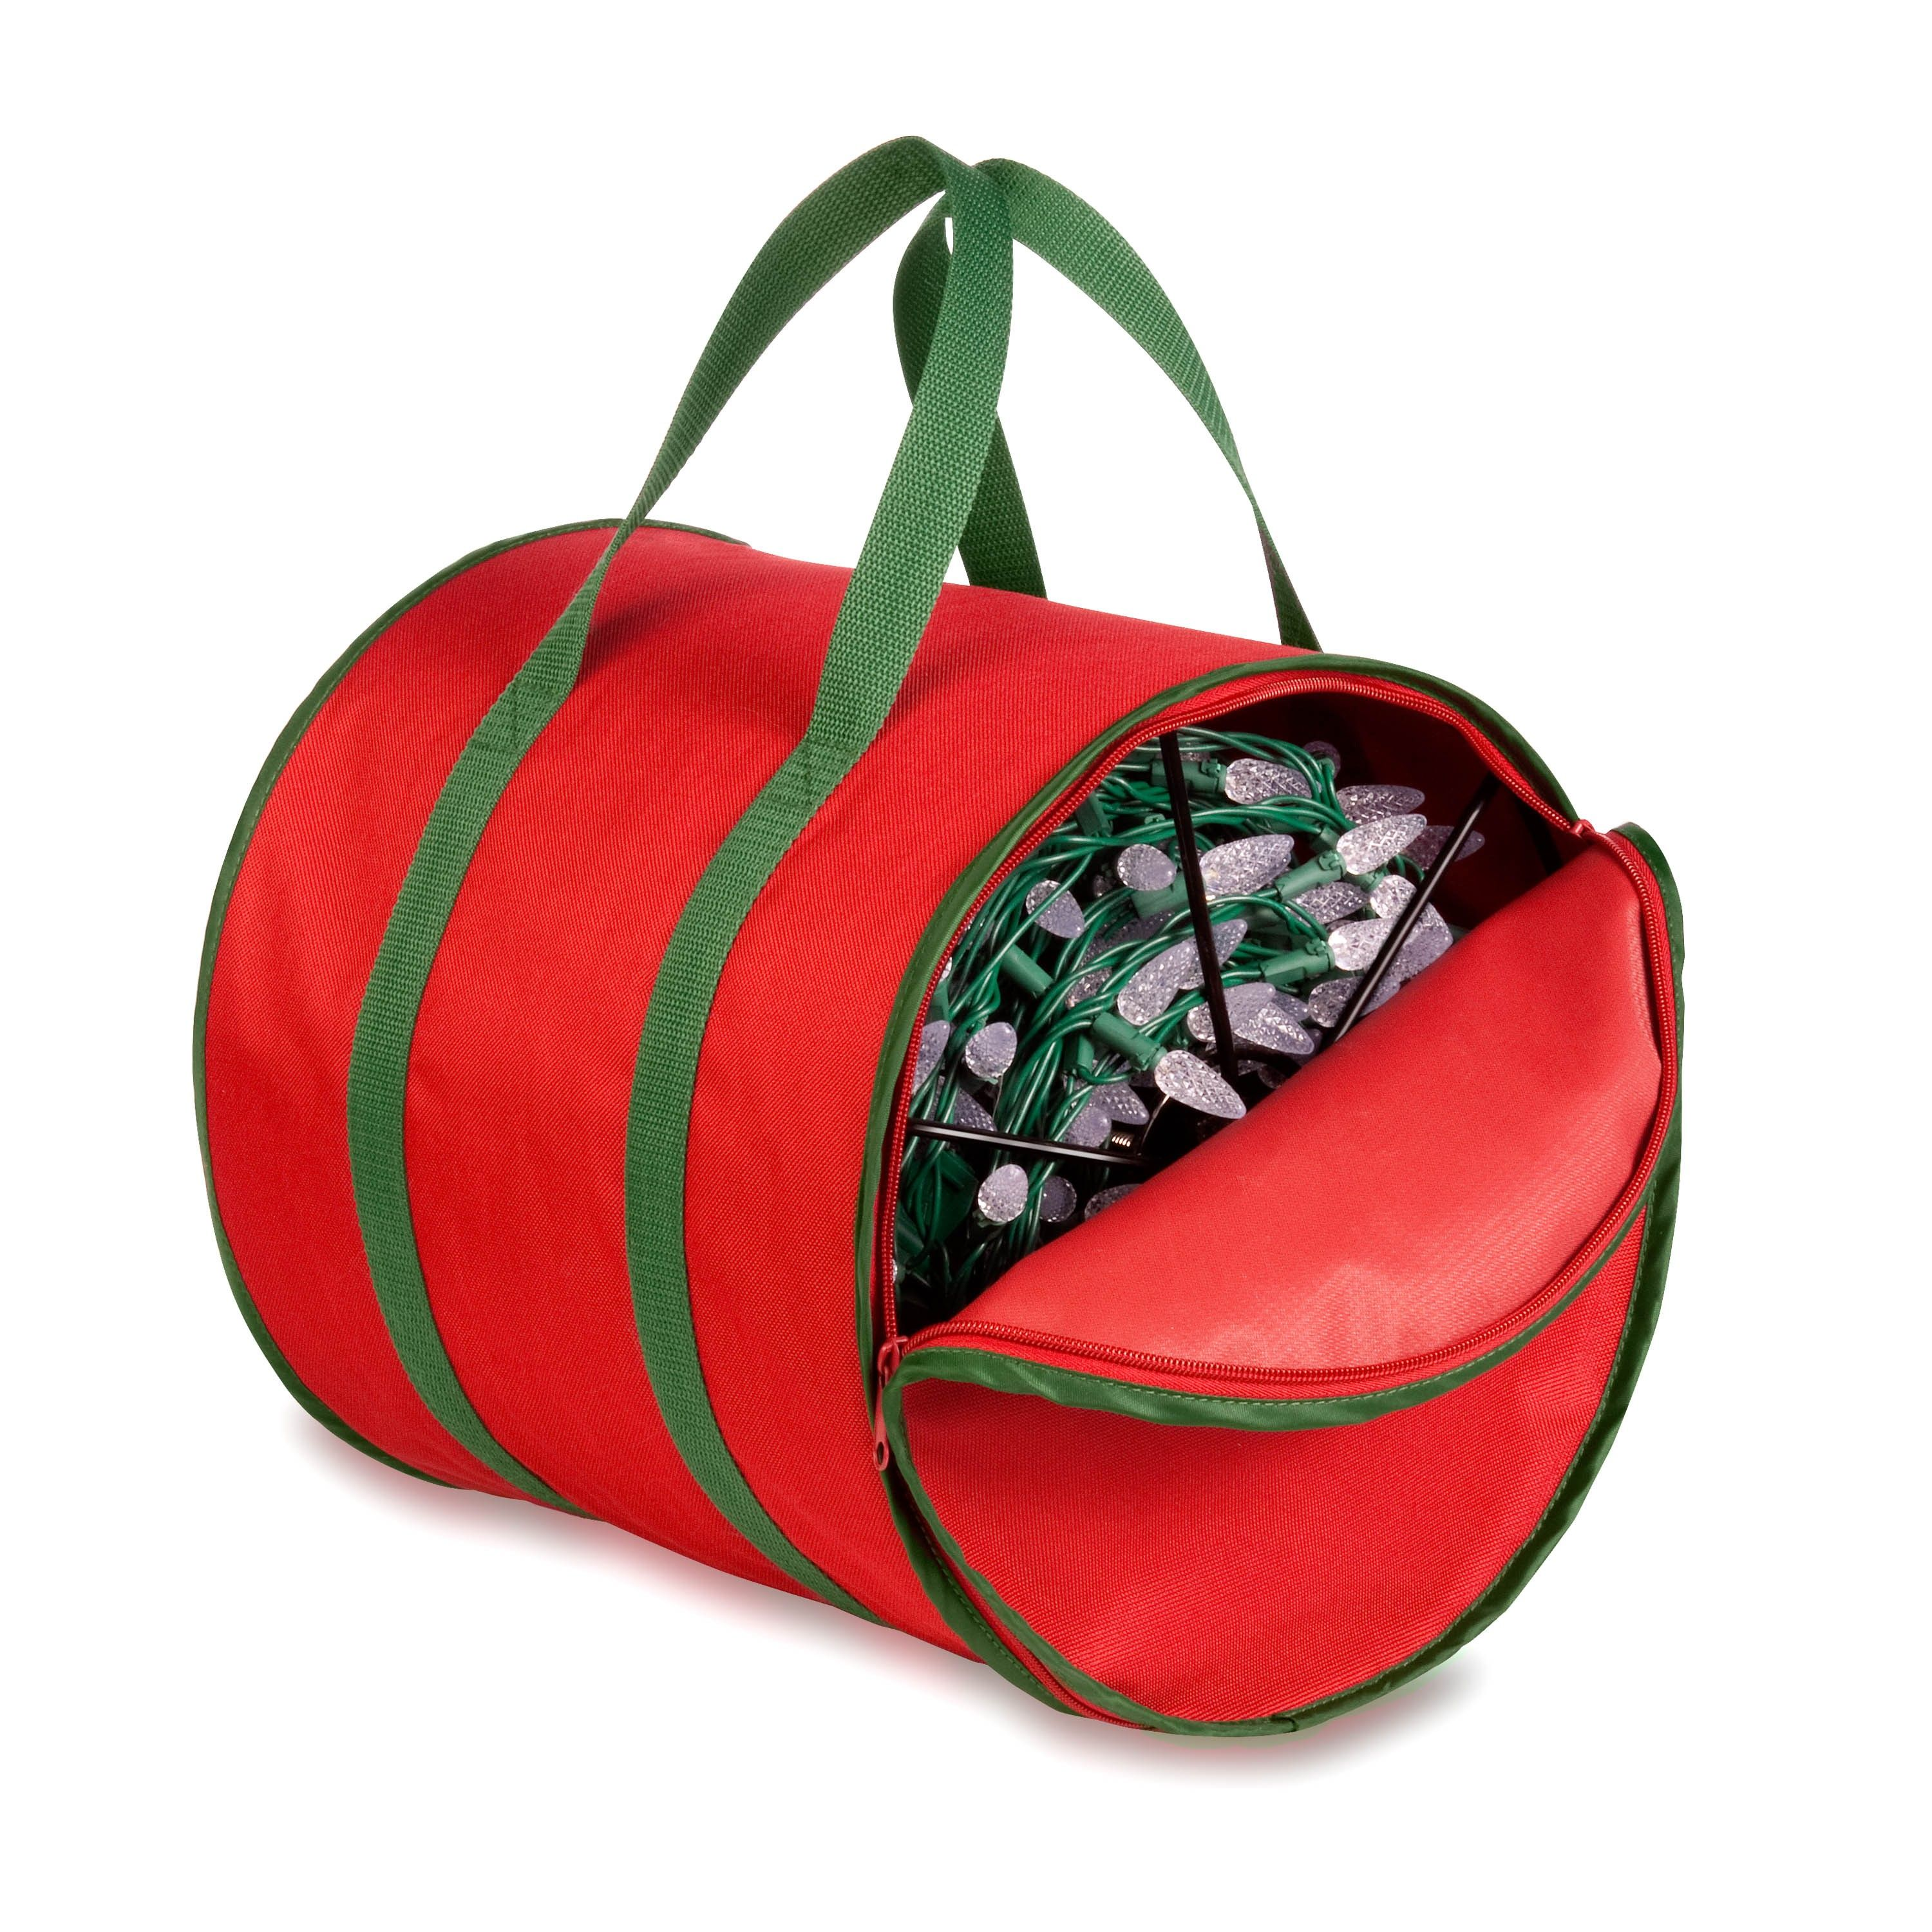 Holiday Light String Storage Reels And Bag- Red & Green - Honey Can Do